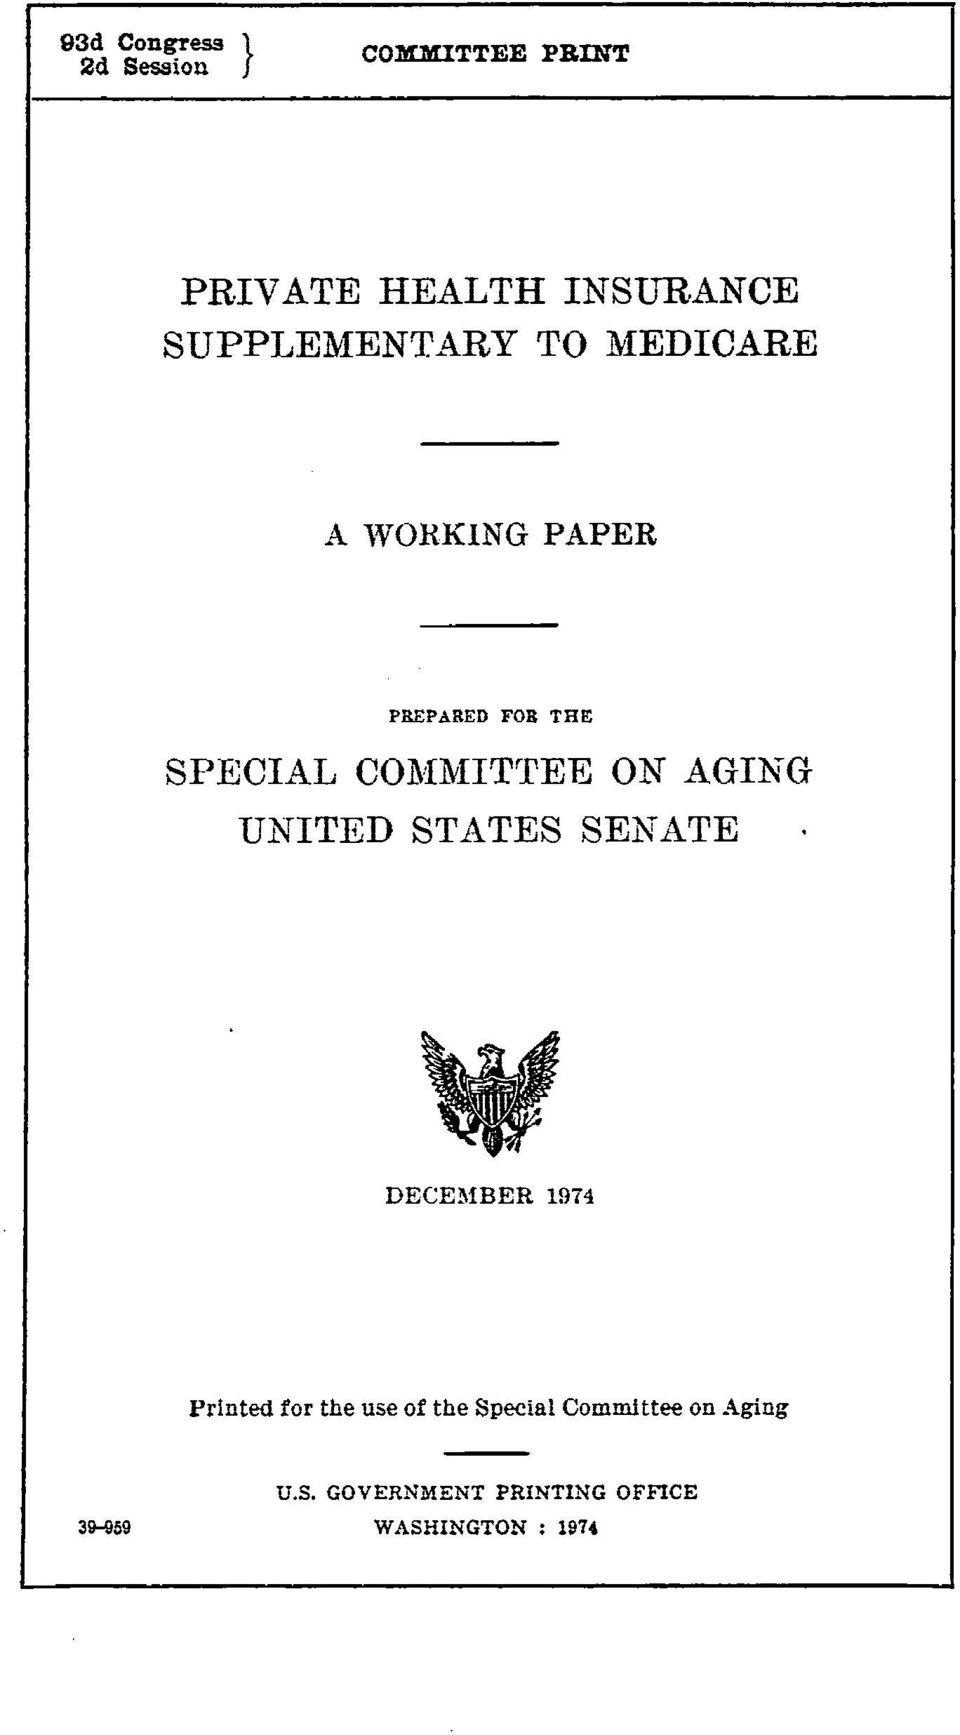 COMMITTEE ON AGING UNITED STATES SENATE - DECEMBER 1974 Printed for the